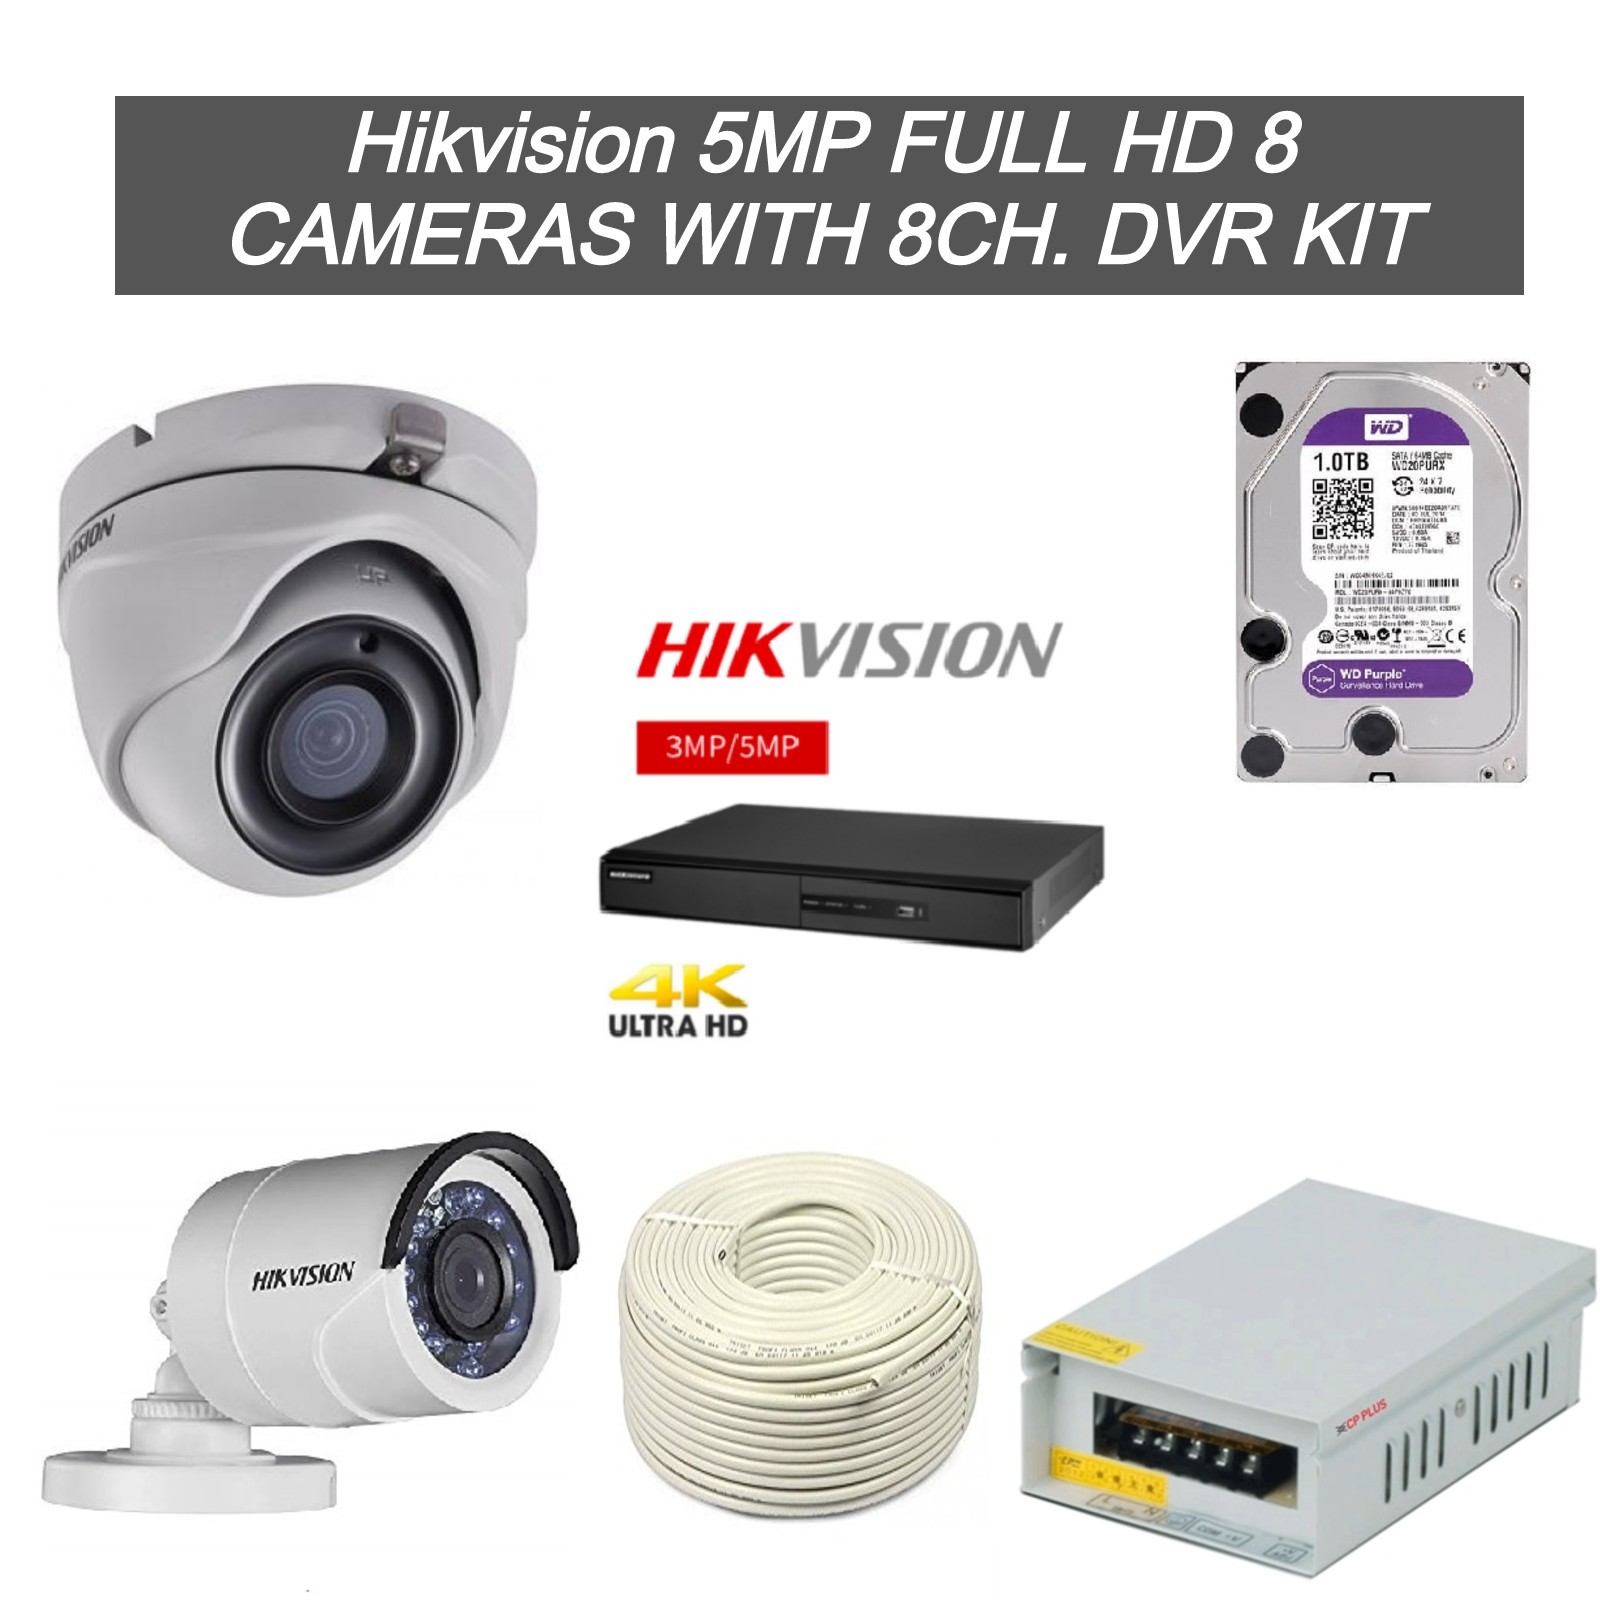 HIKVISION 5MP FULL HD 8 CCTV CAMERAS WITH 8CH. DVR KIT